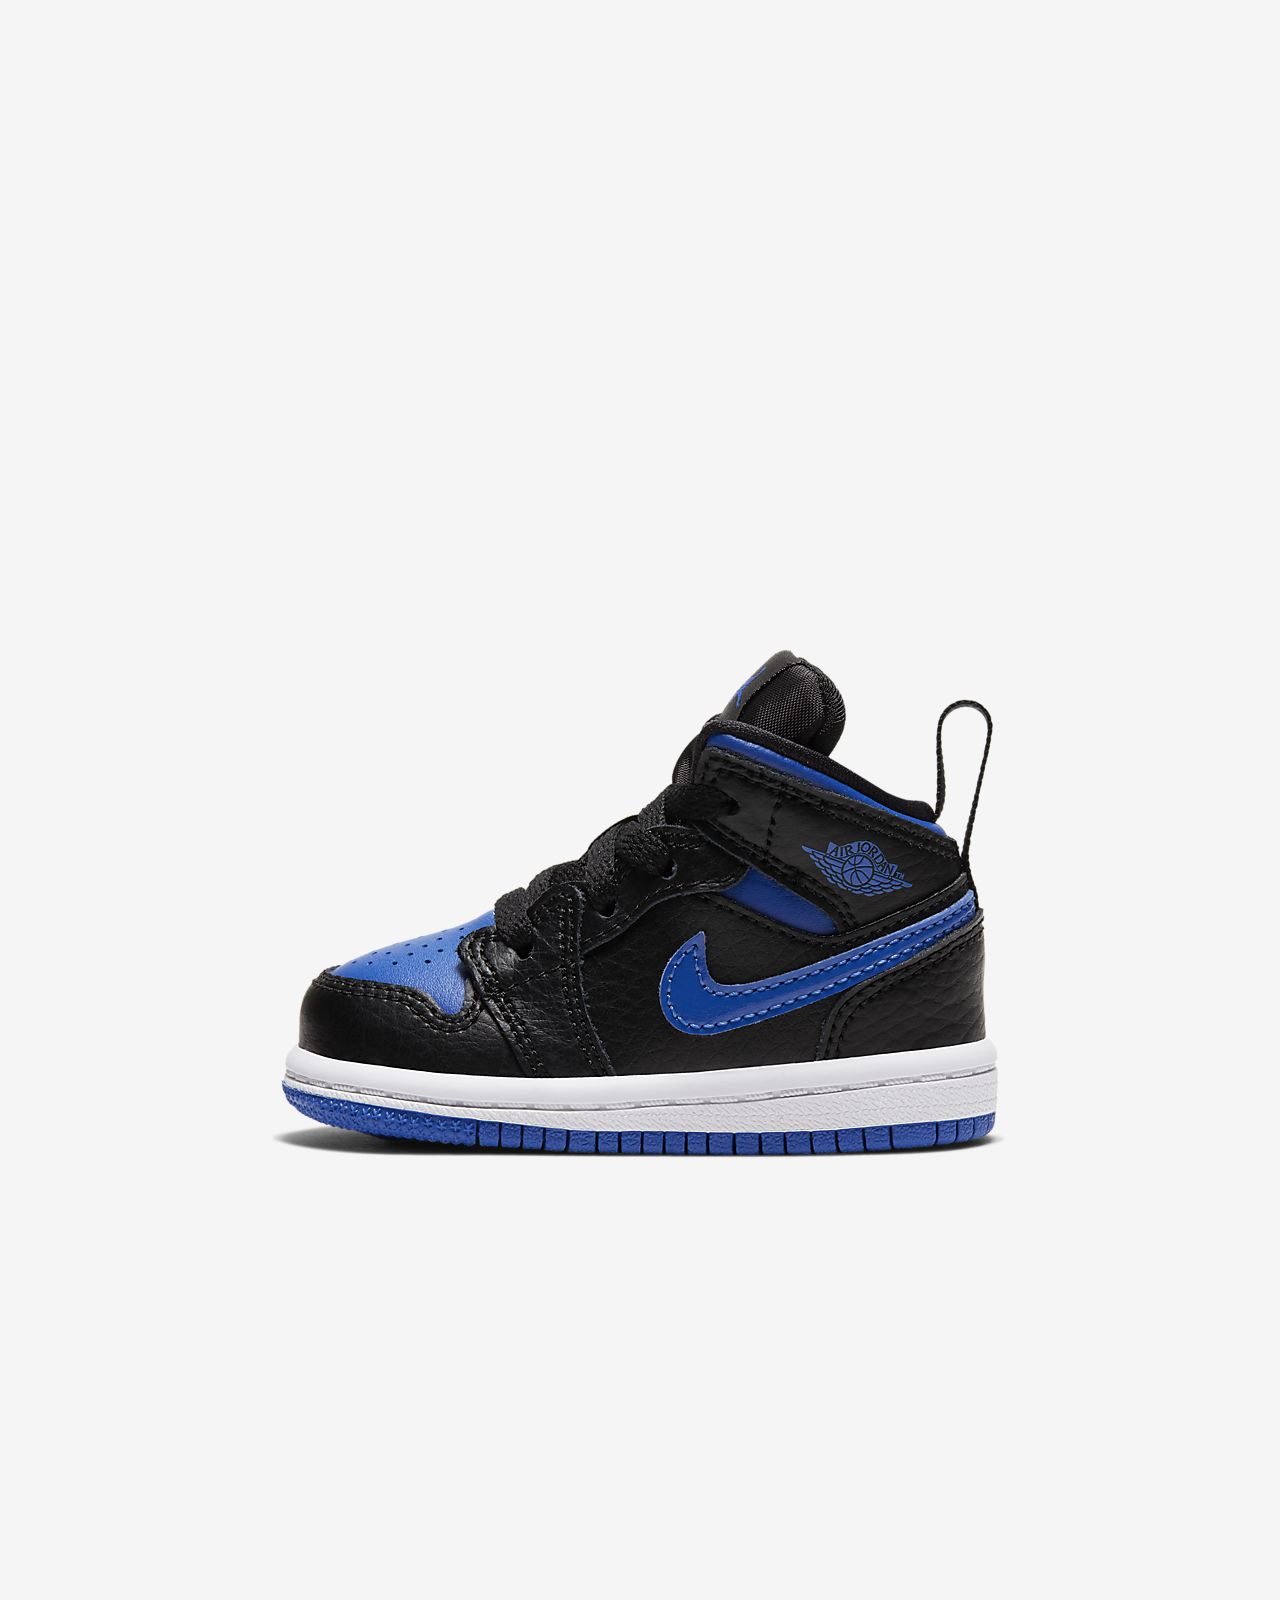 Air Jordan 1 Mid Infant/Toddler Shoe